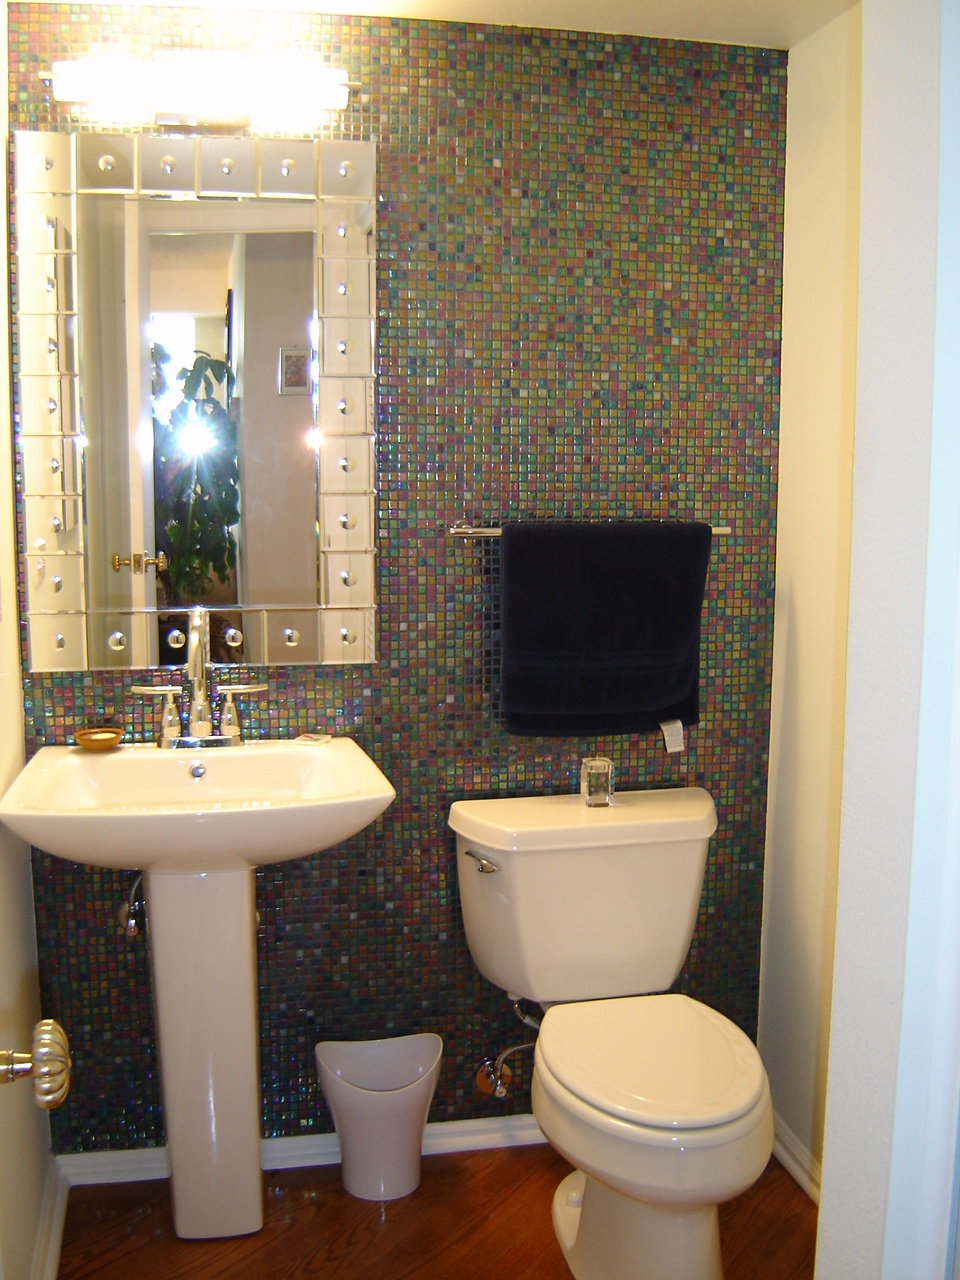 Litwin powder room remodel denver co schuster design - Powder room remodel ideas ...